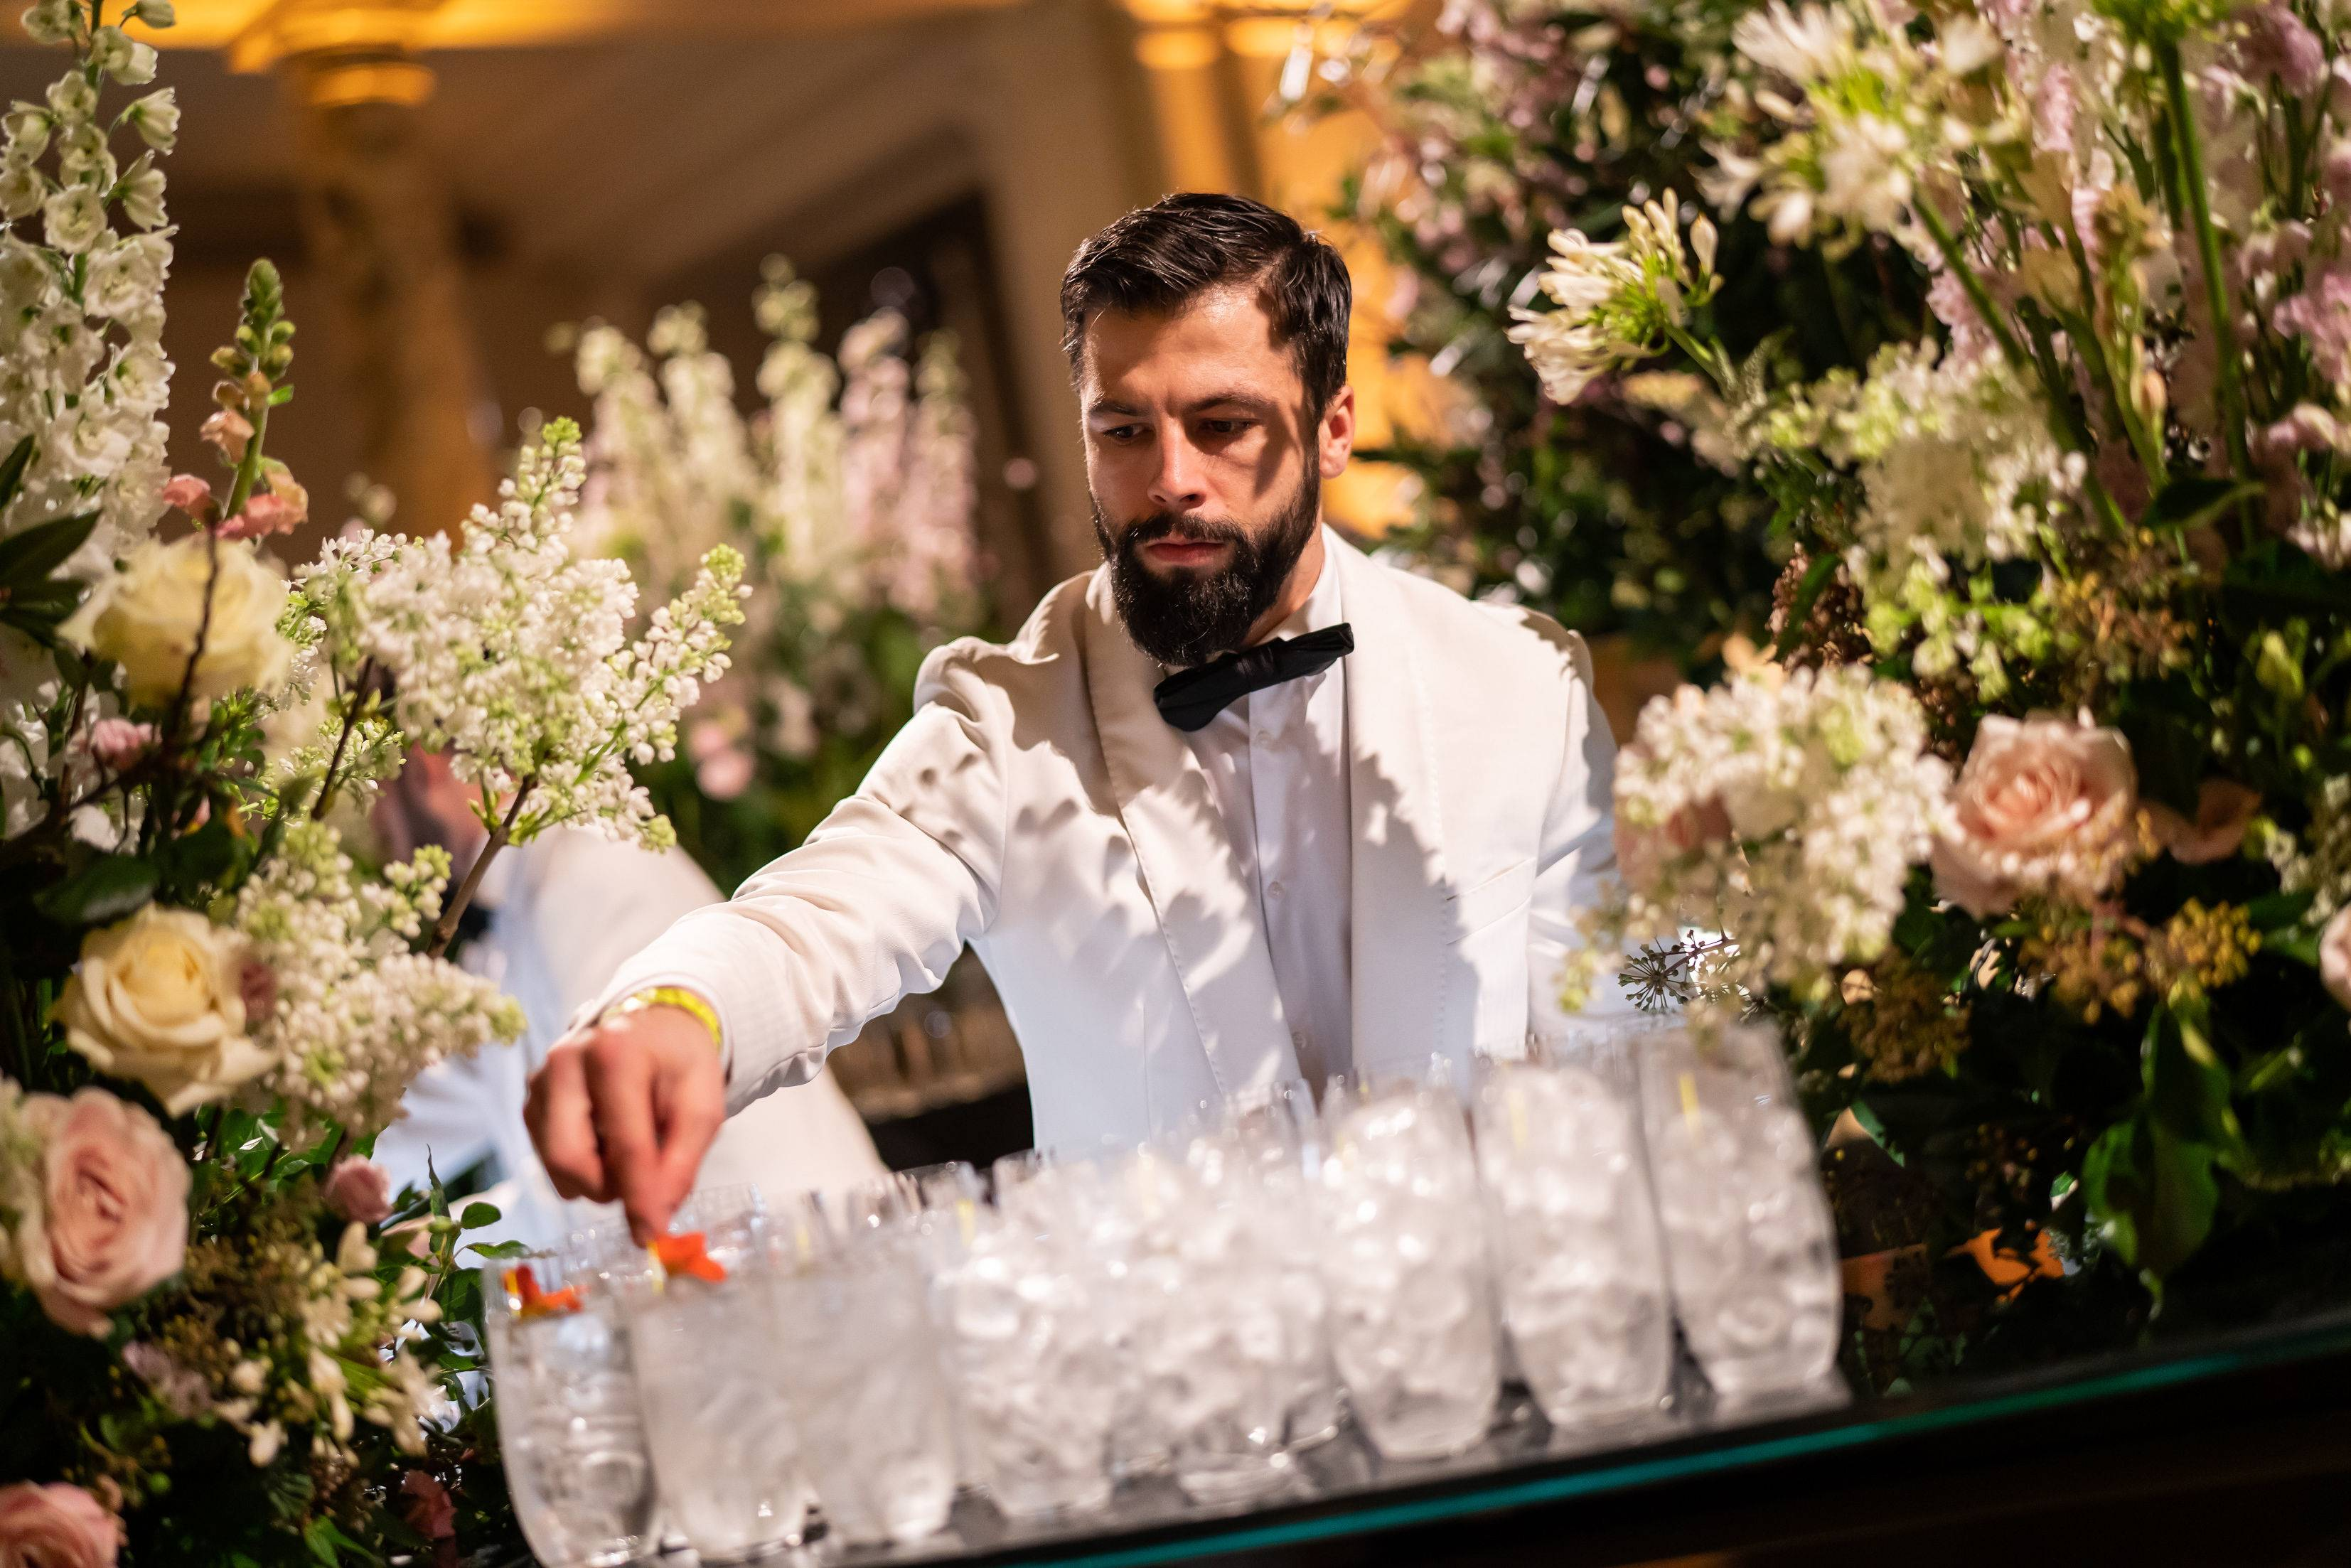 Luxury London wedding planners, Life of a wedding planner, Bar florals, Floristry design at the V&A